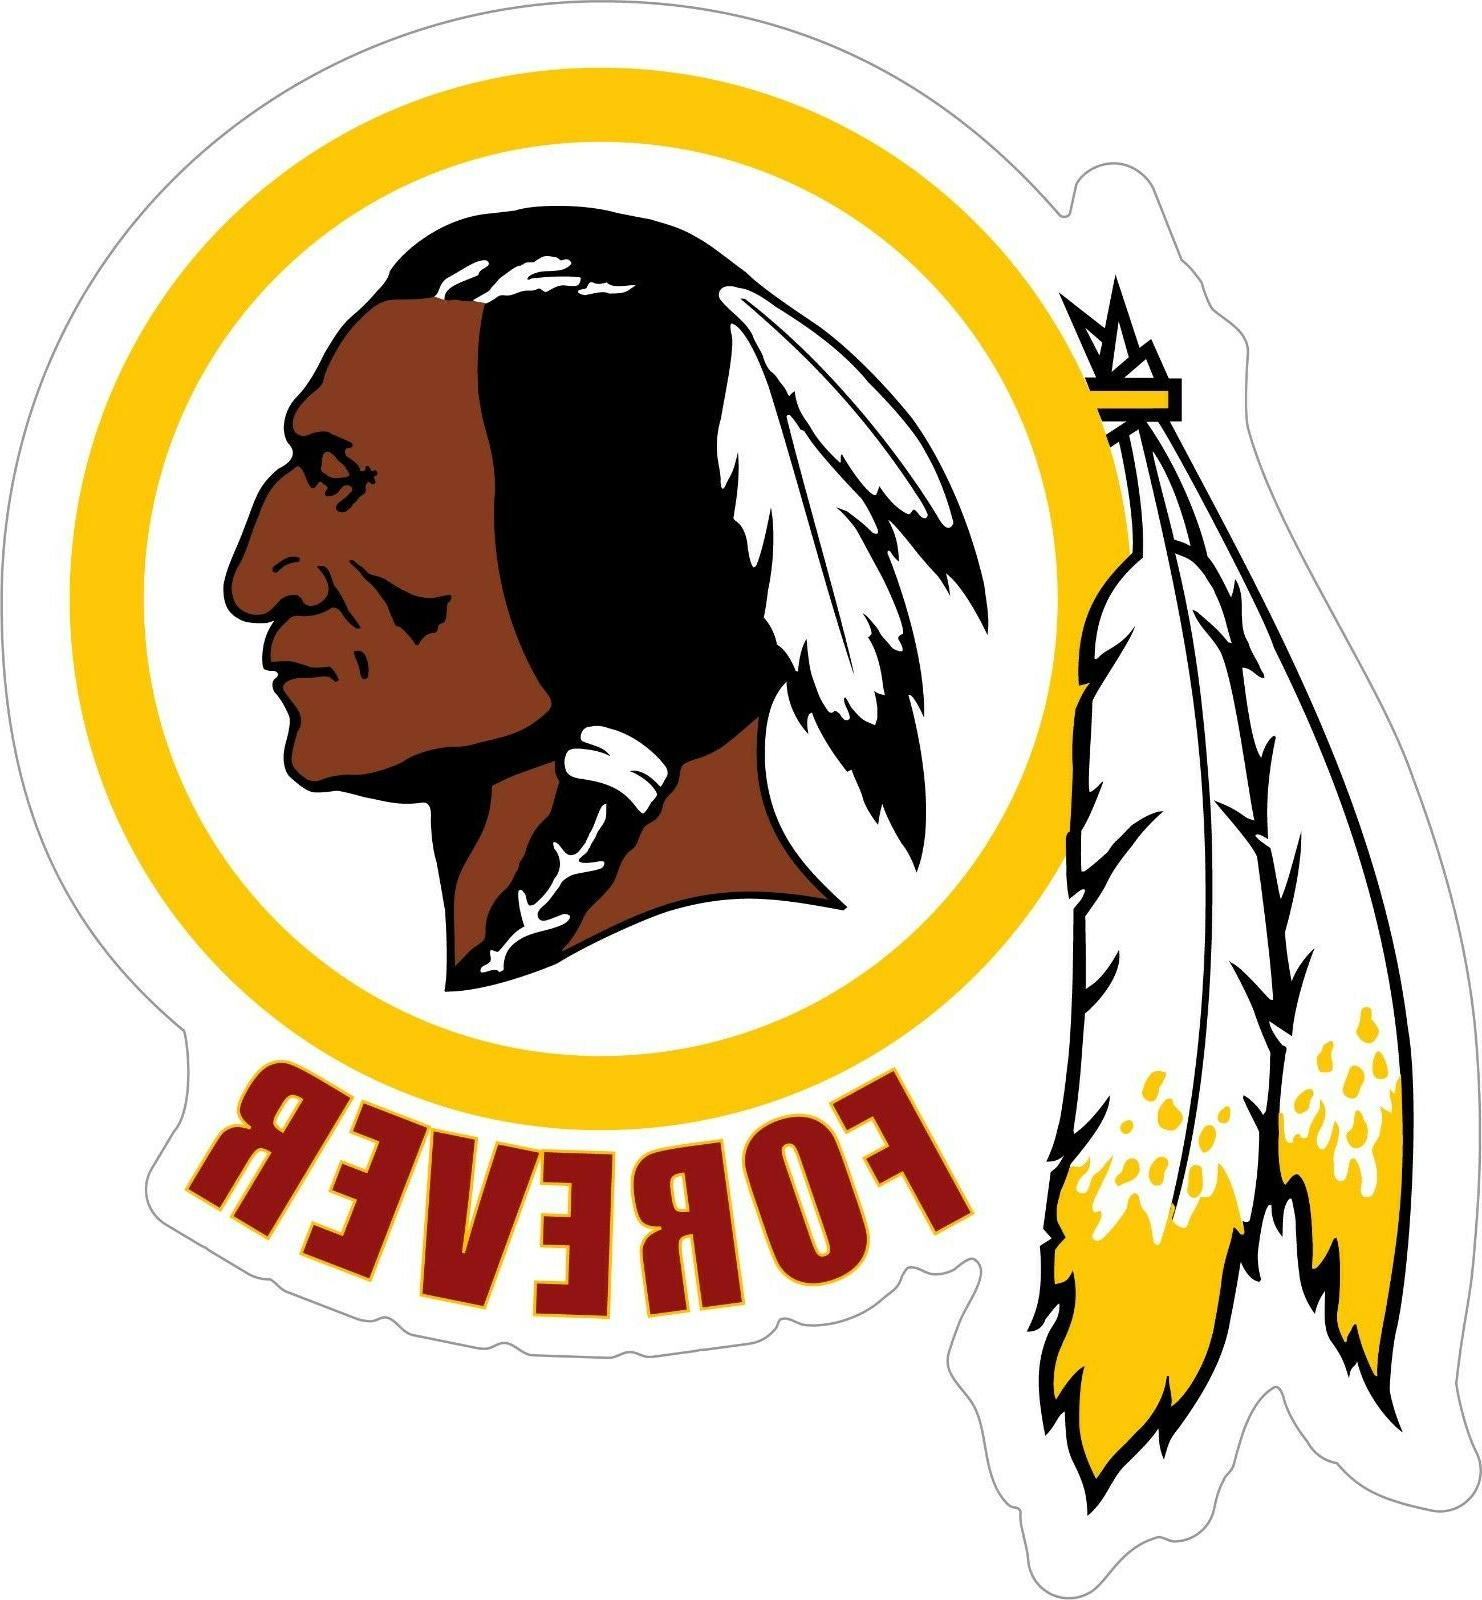 WASHINGTON REDSKINS FOREVER Vinyl Decal / Sticker 7+ YEAR LI